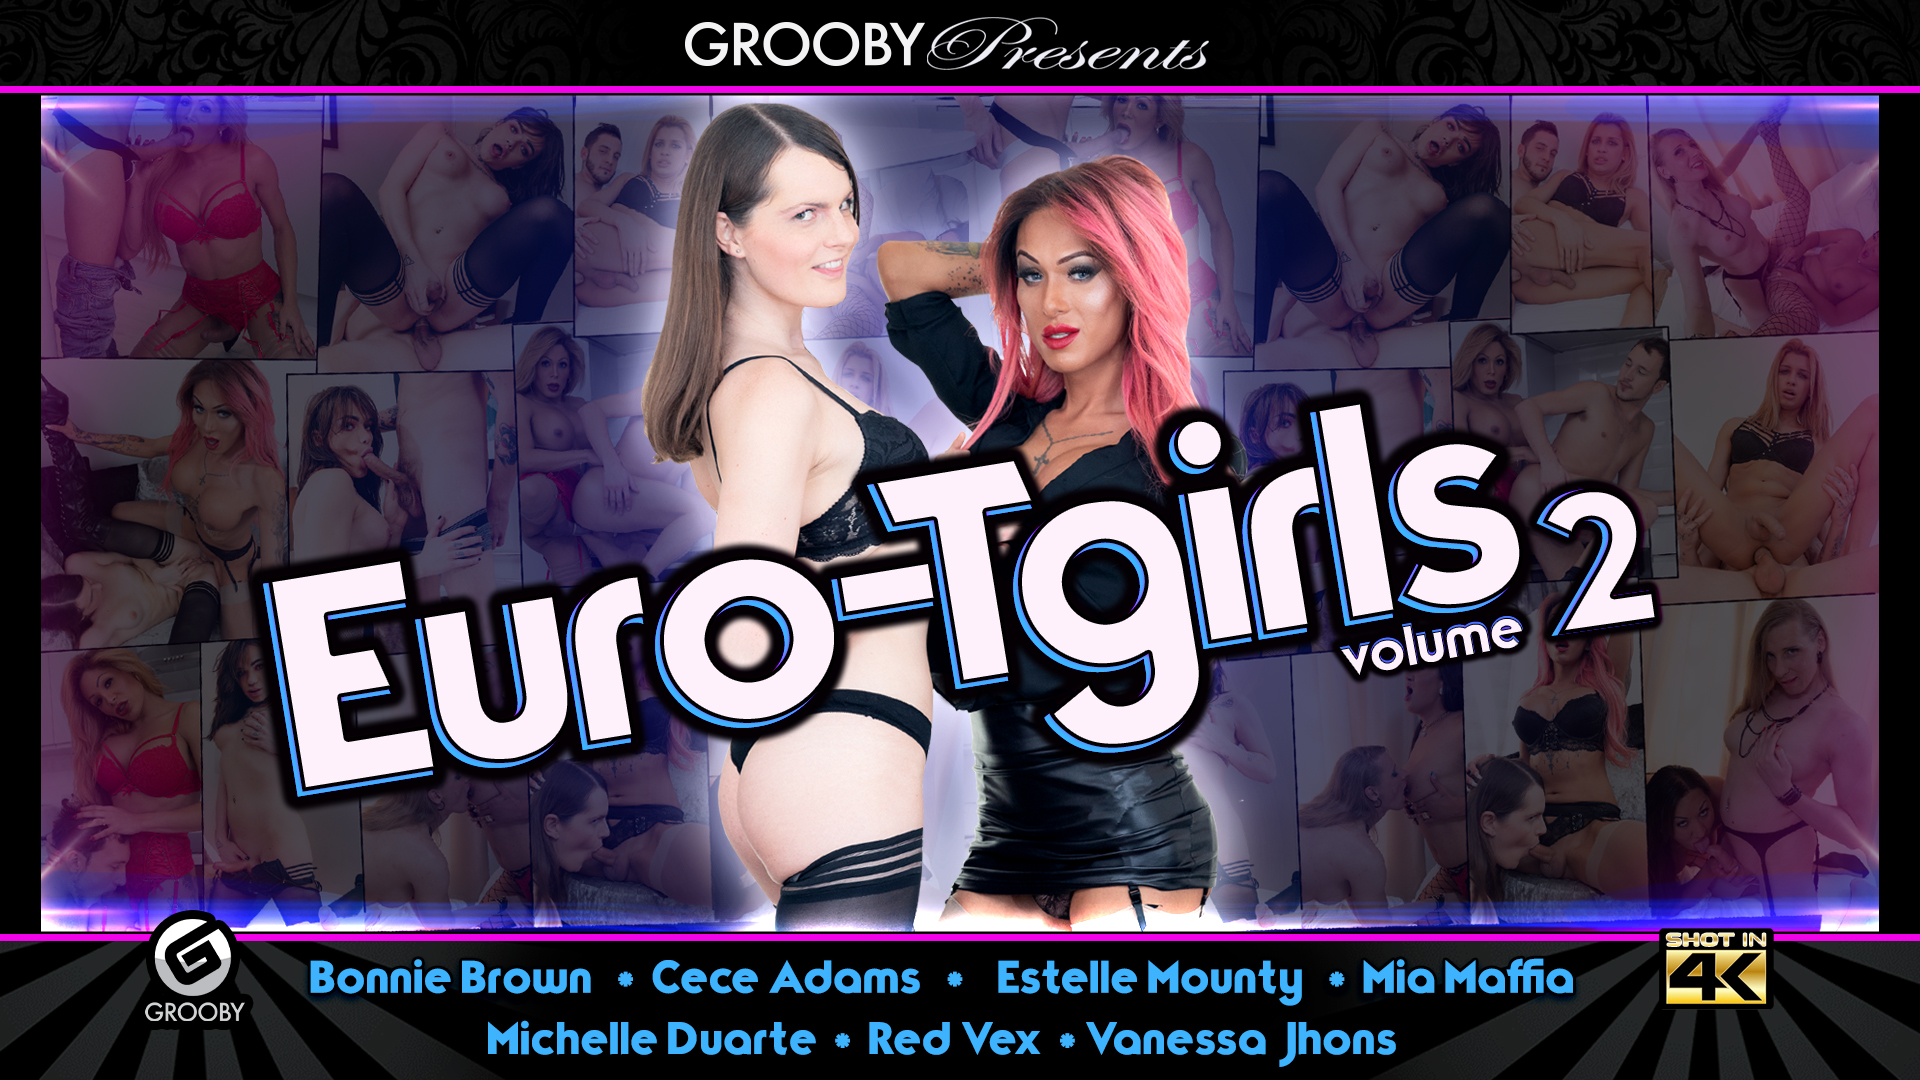 EuroTgirls volume 2 -DVD Trailer